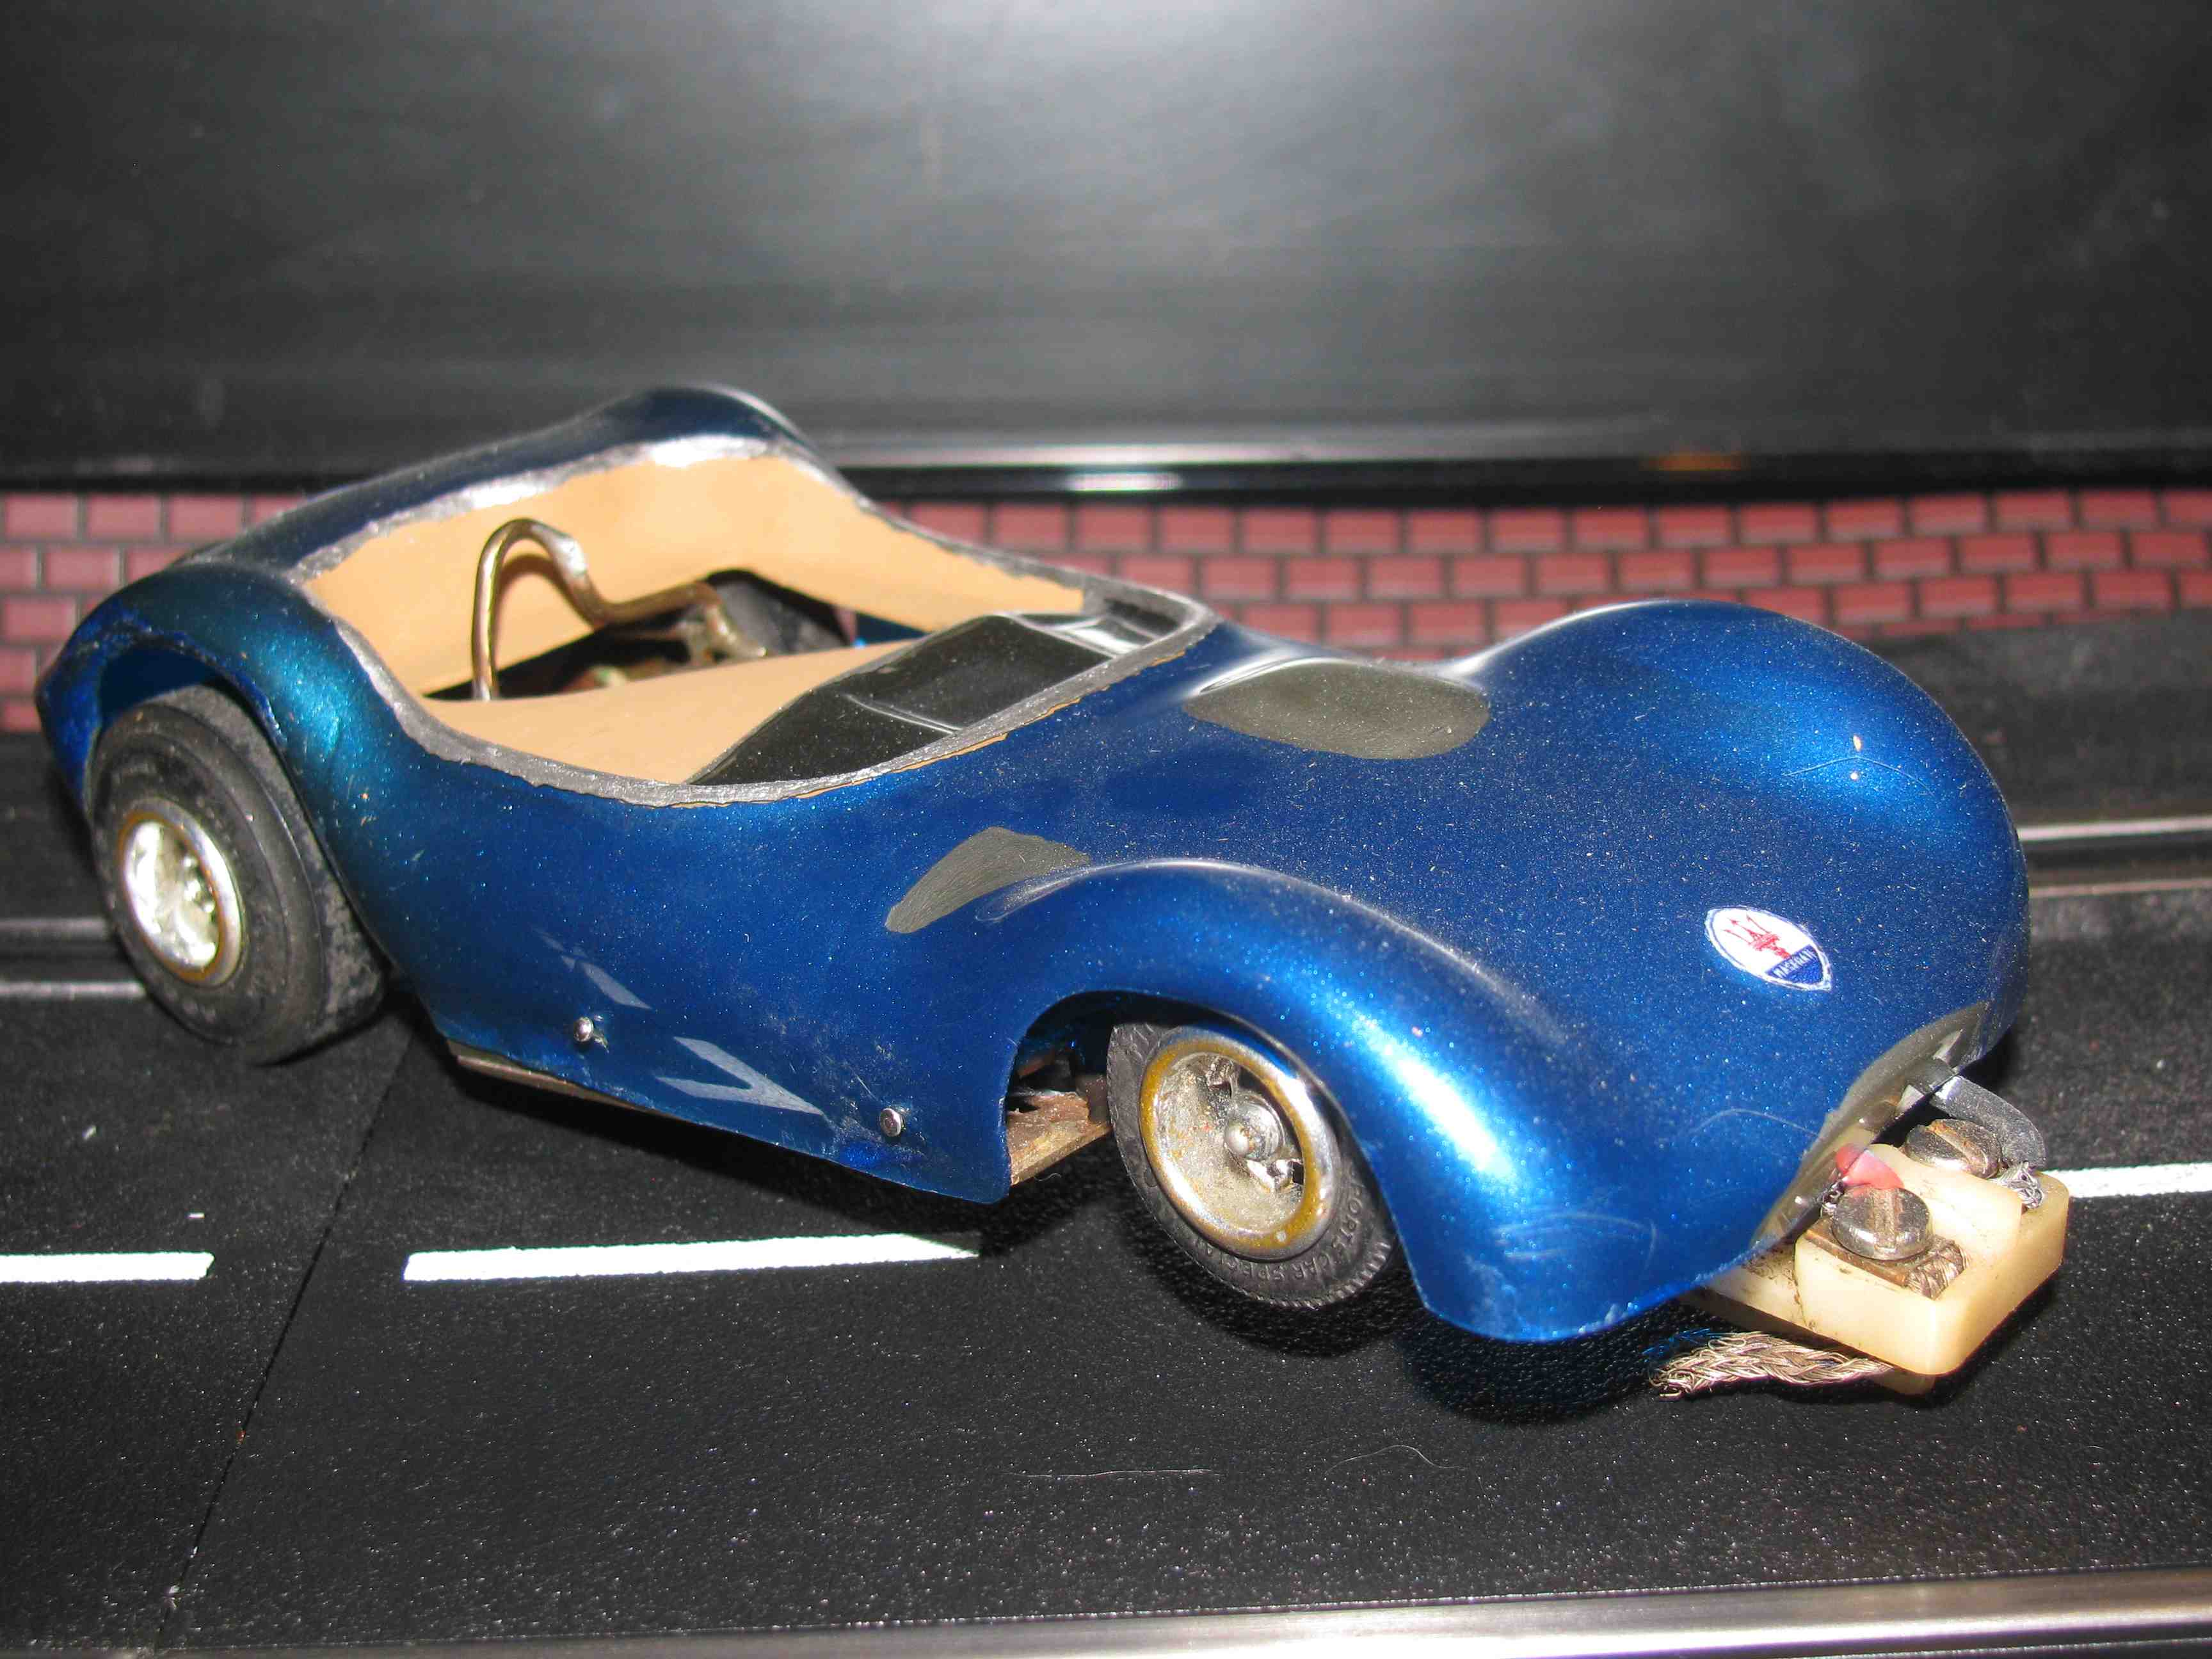 *SOLD* Vintage Maserati Birdcage - Slot Car - 1/32 Scale – Brass Chassis (Metallic Blue Paint)